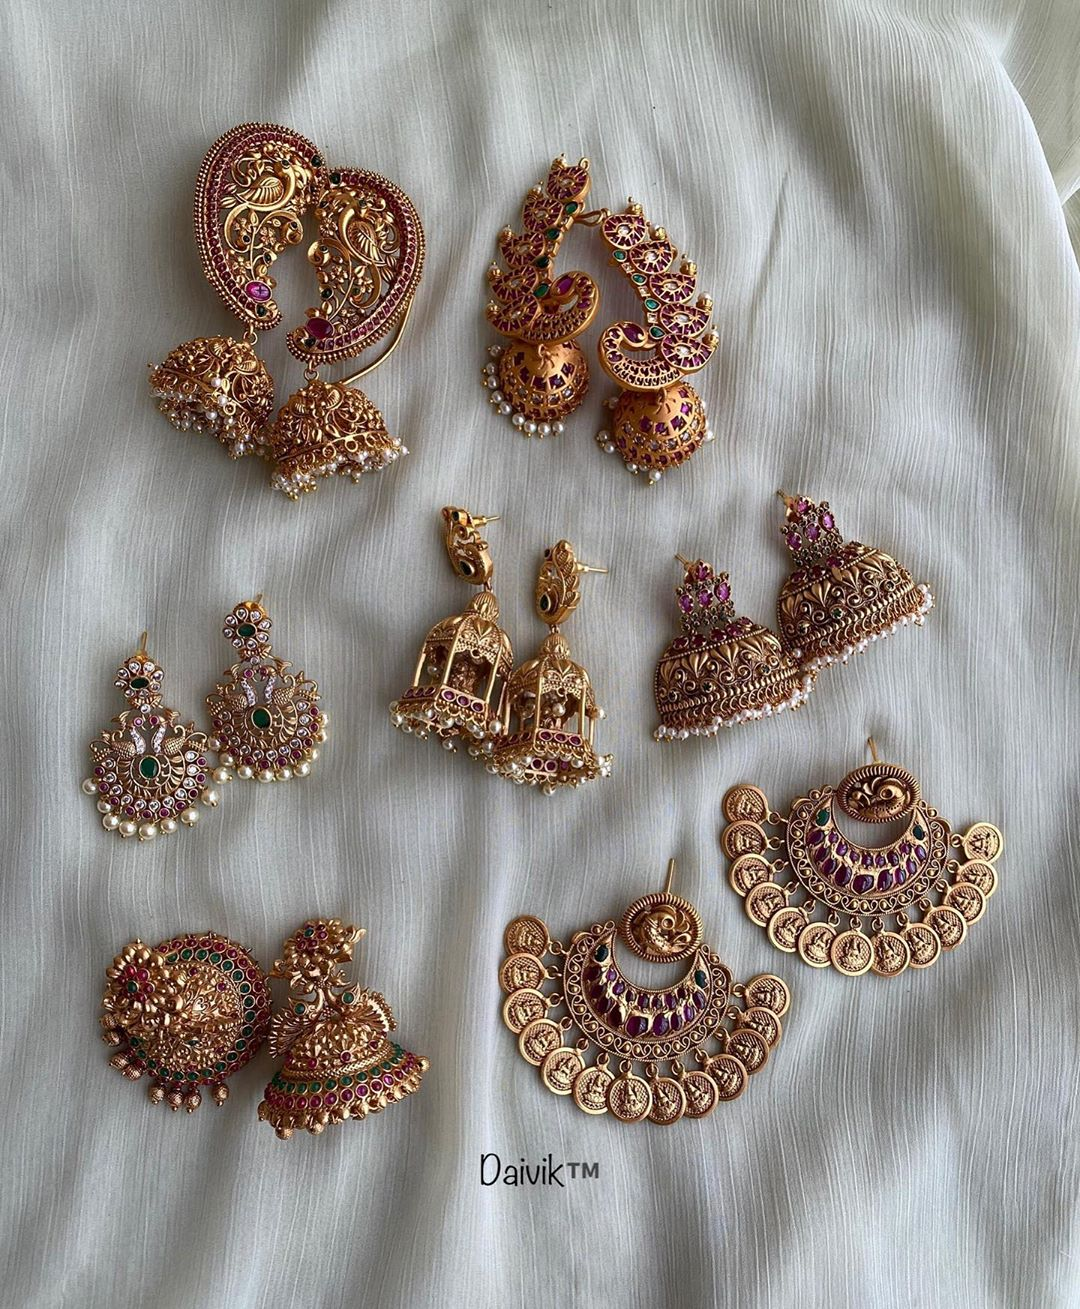 antique-imitation-earrings-collection